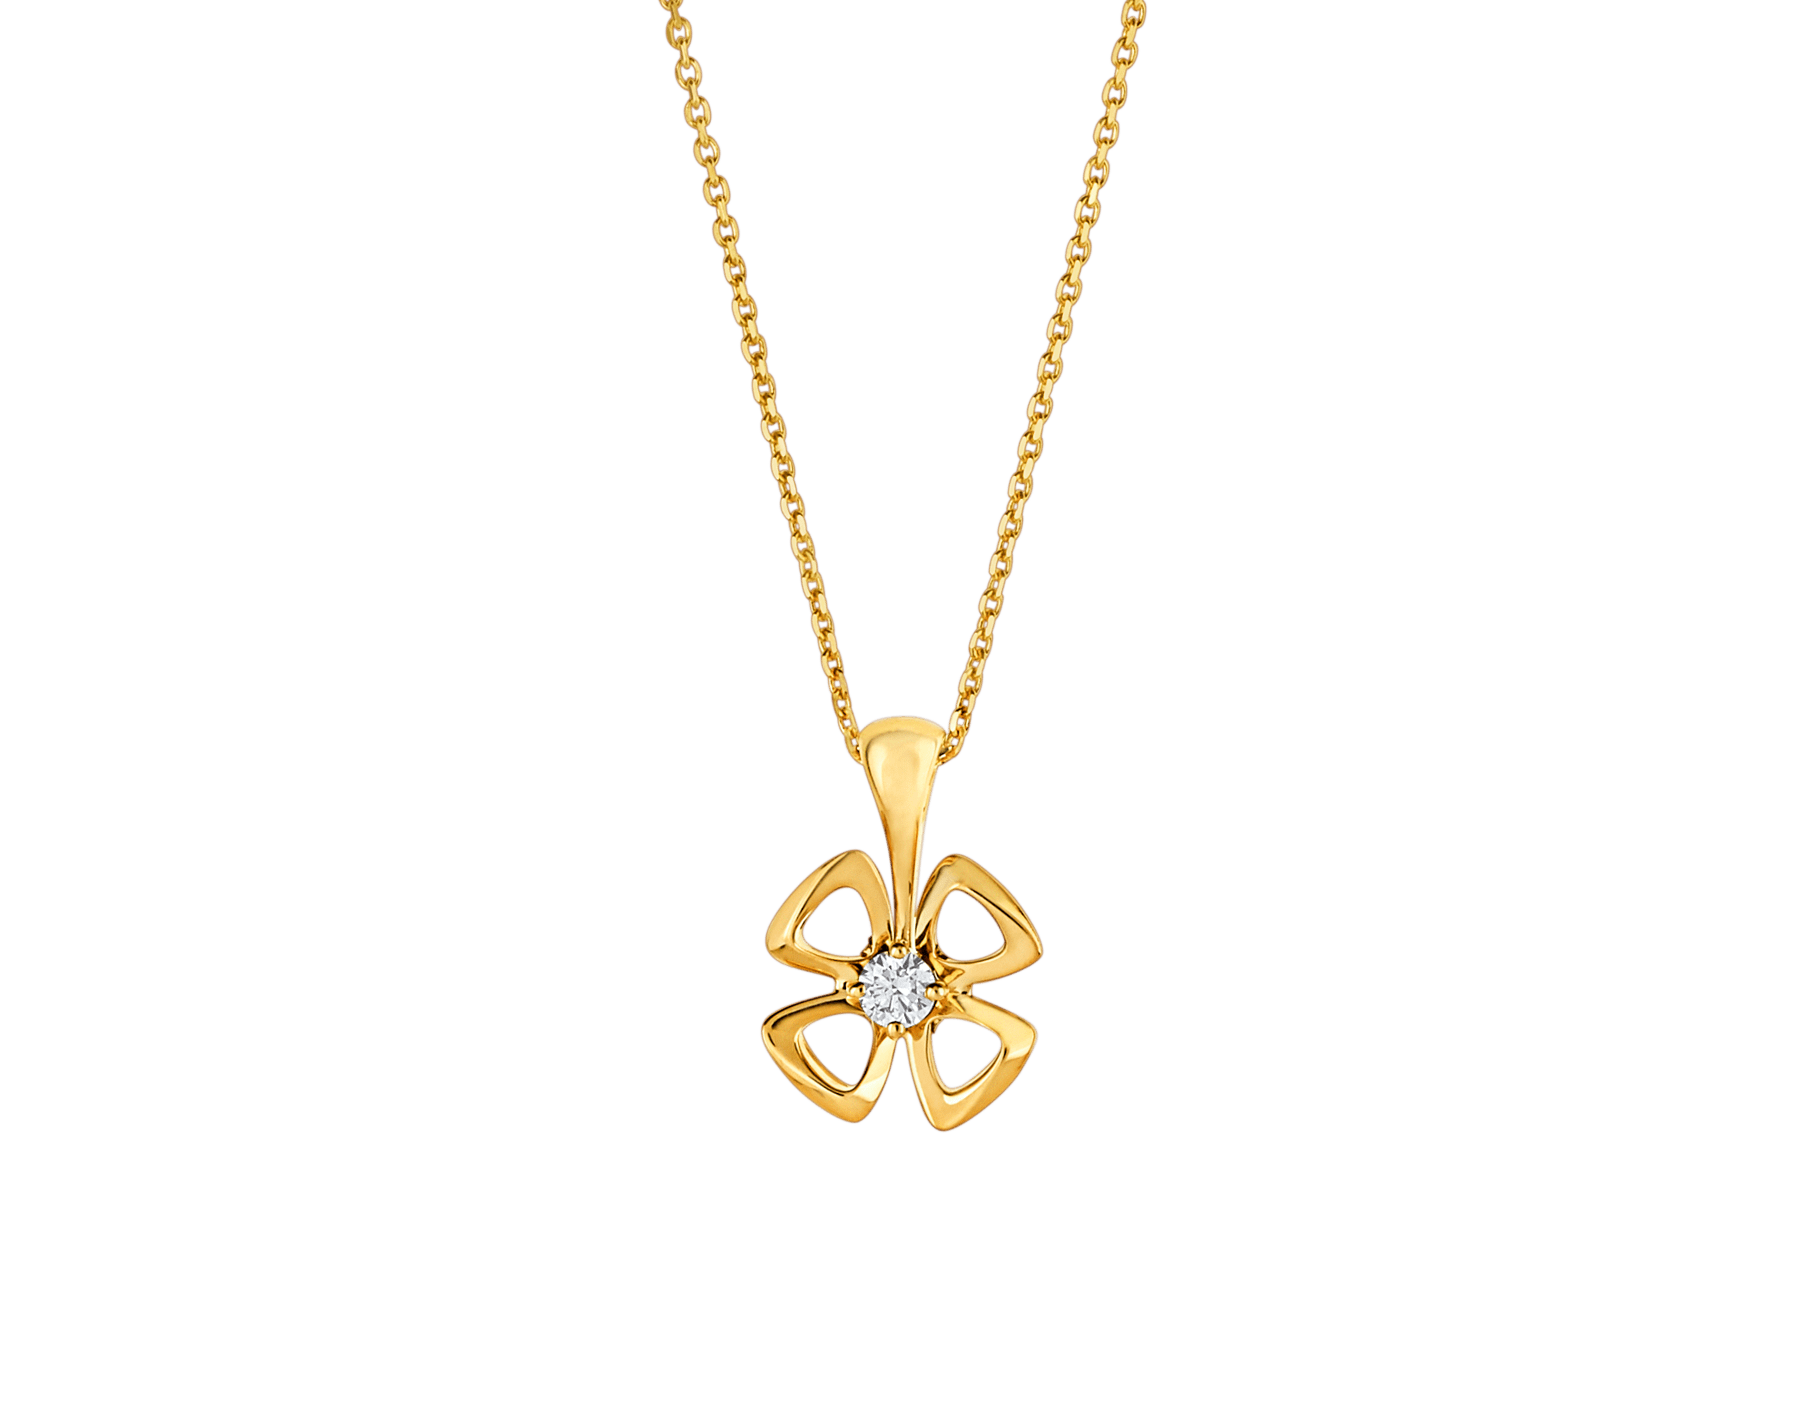 Fiorever 18 kt yellow gold necklace set with a central diamond. 357501 image 1